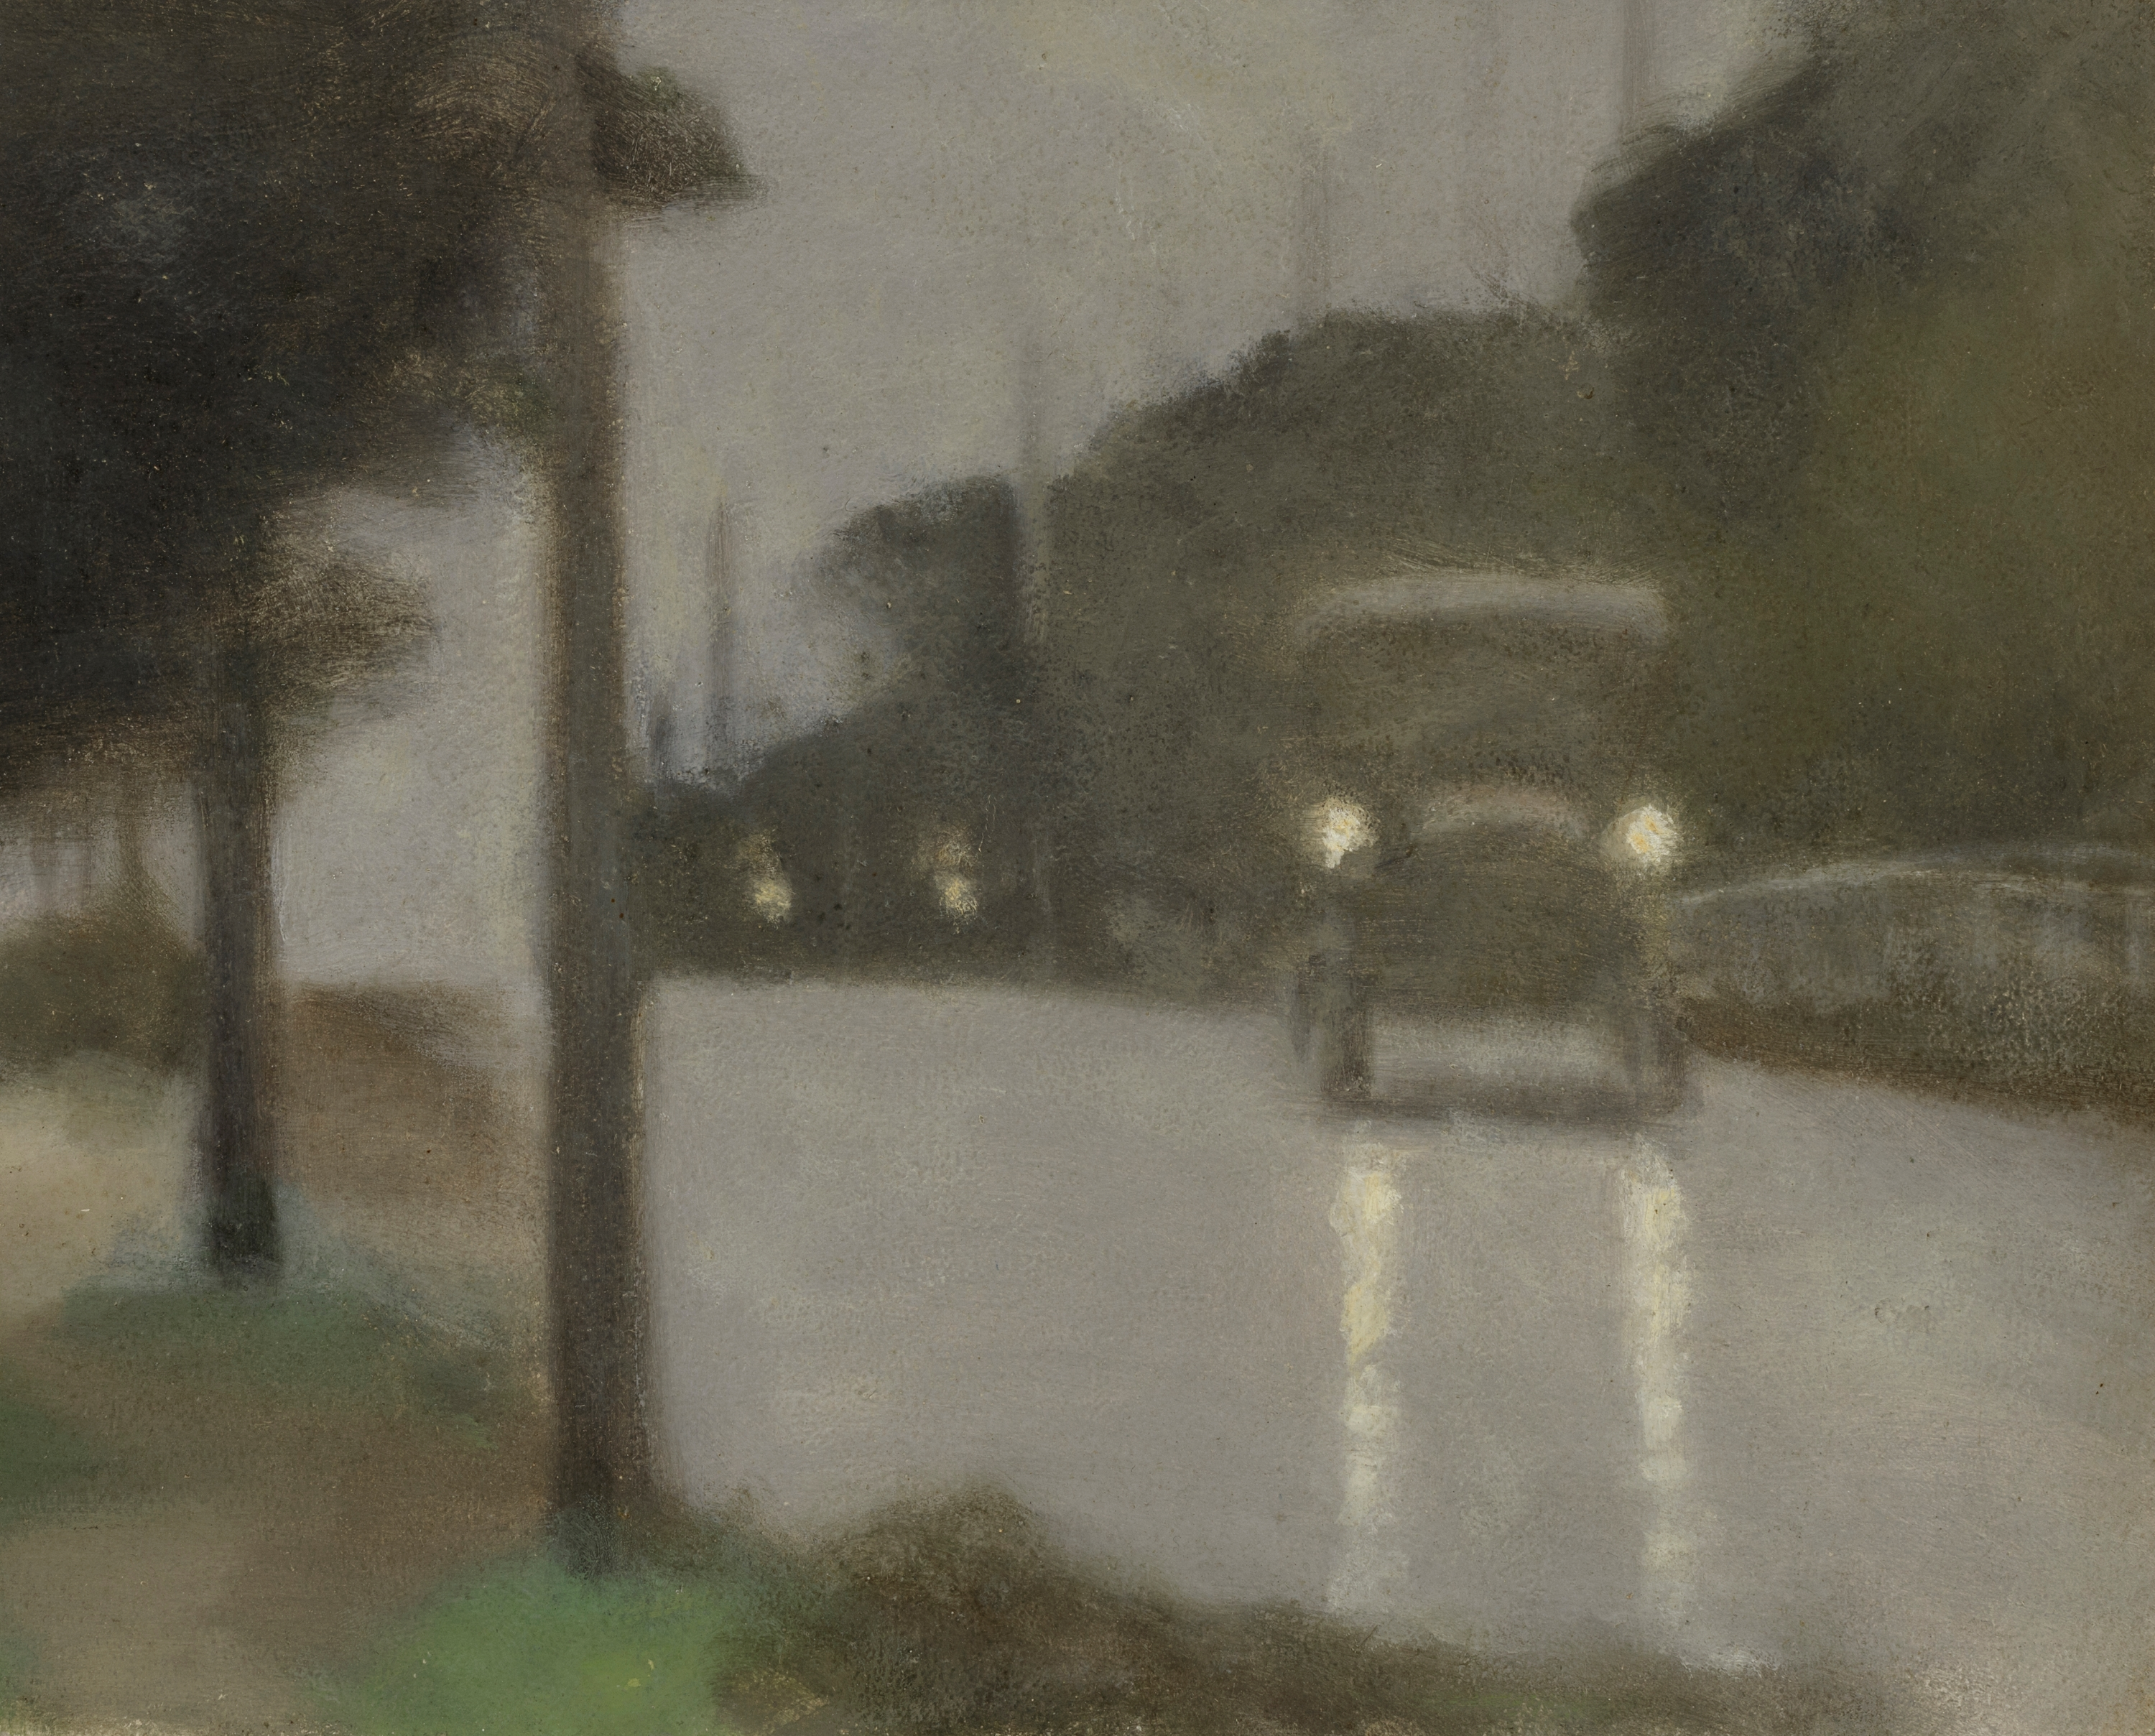 A painting by Clarice Beckett, blurry realism, of a 1920s car driving on a misty street